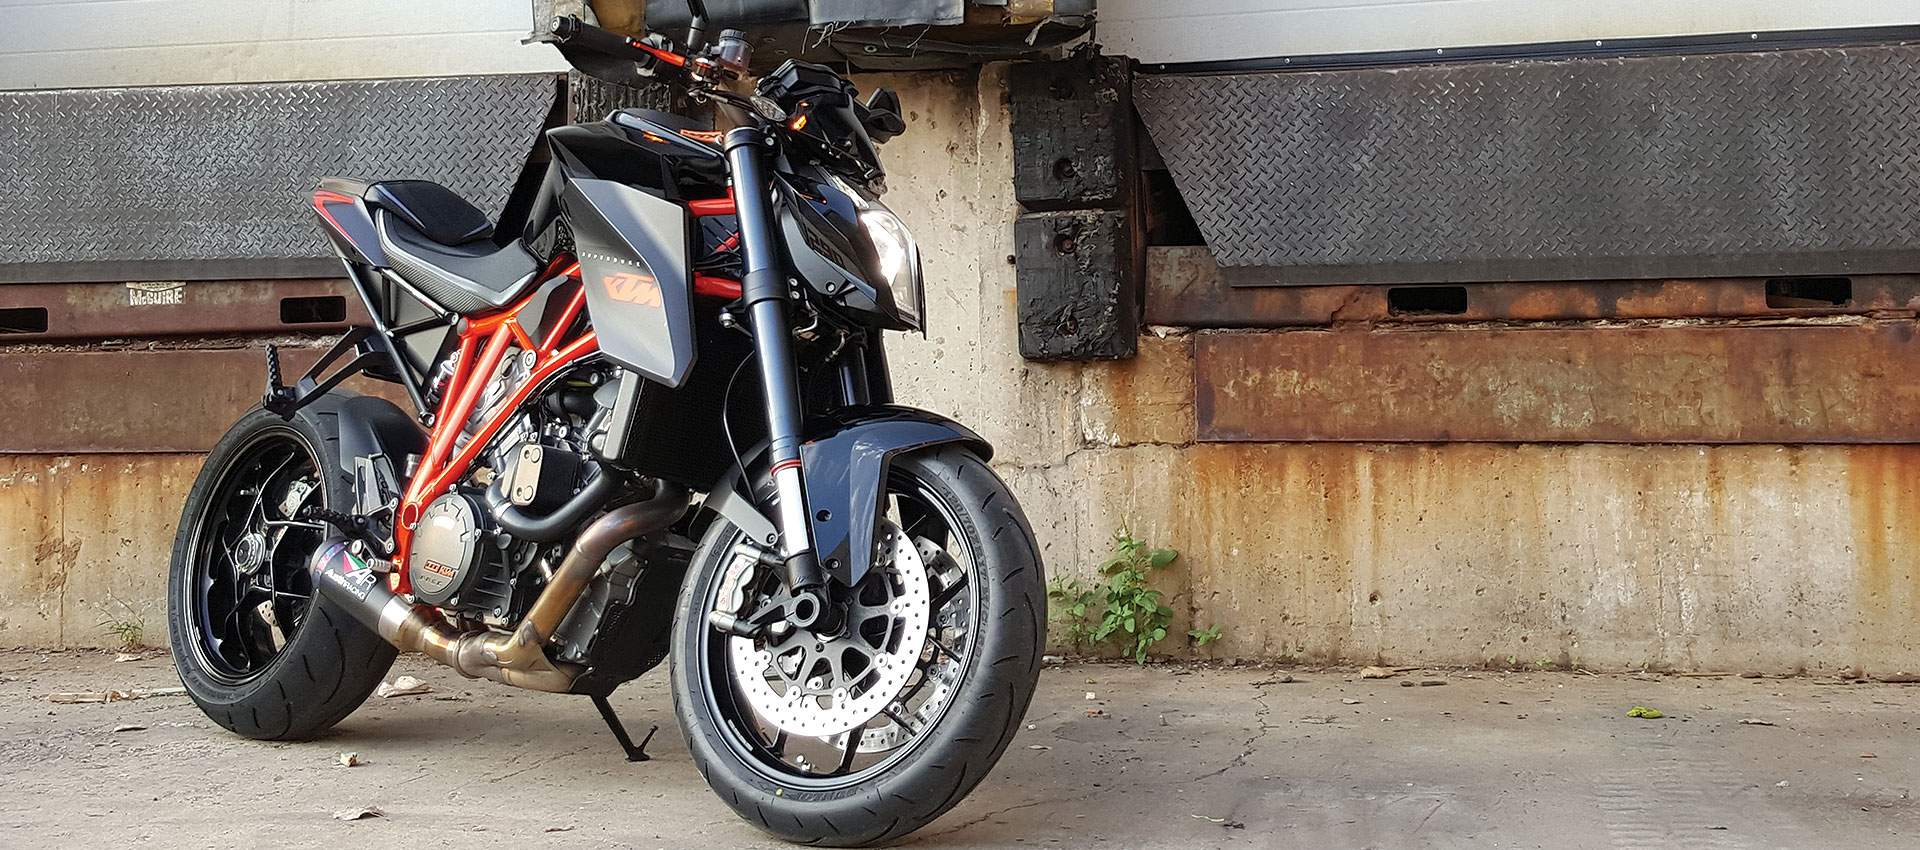 KTM 1290 SUPER DUKE R 14-16 LUIMOTO PRODUCTS